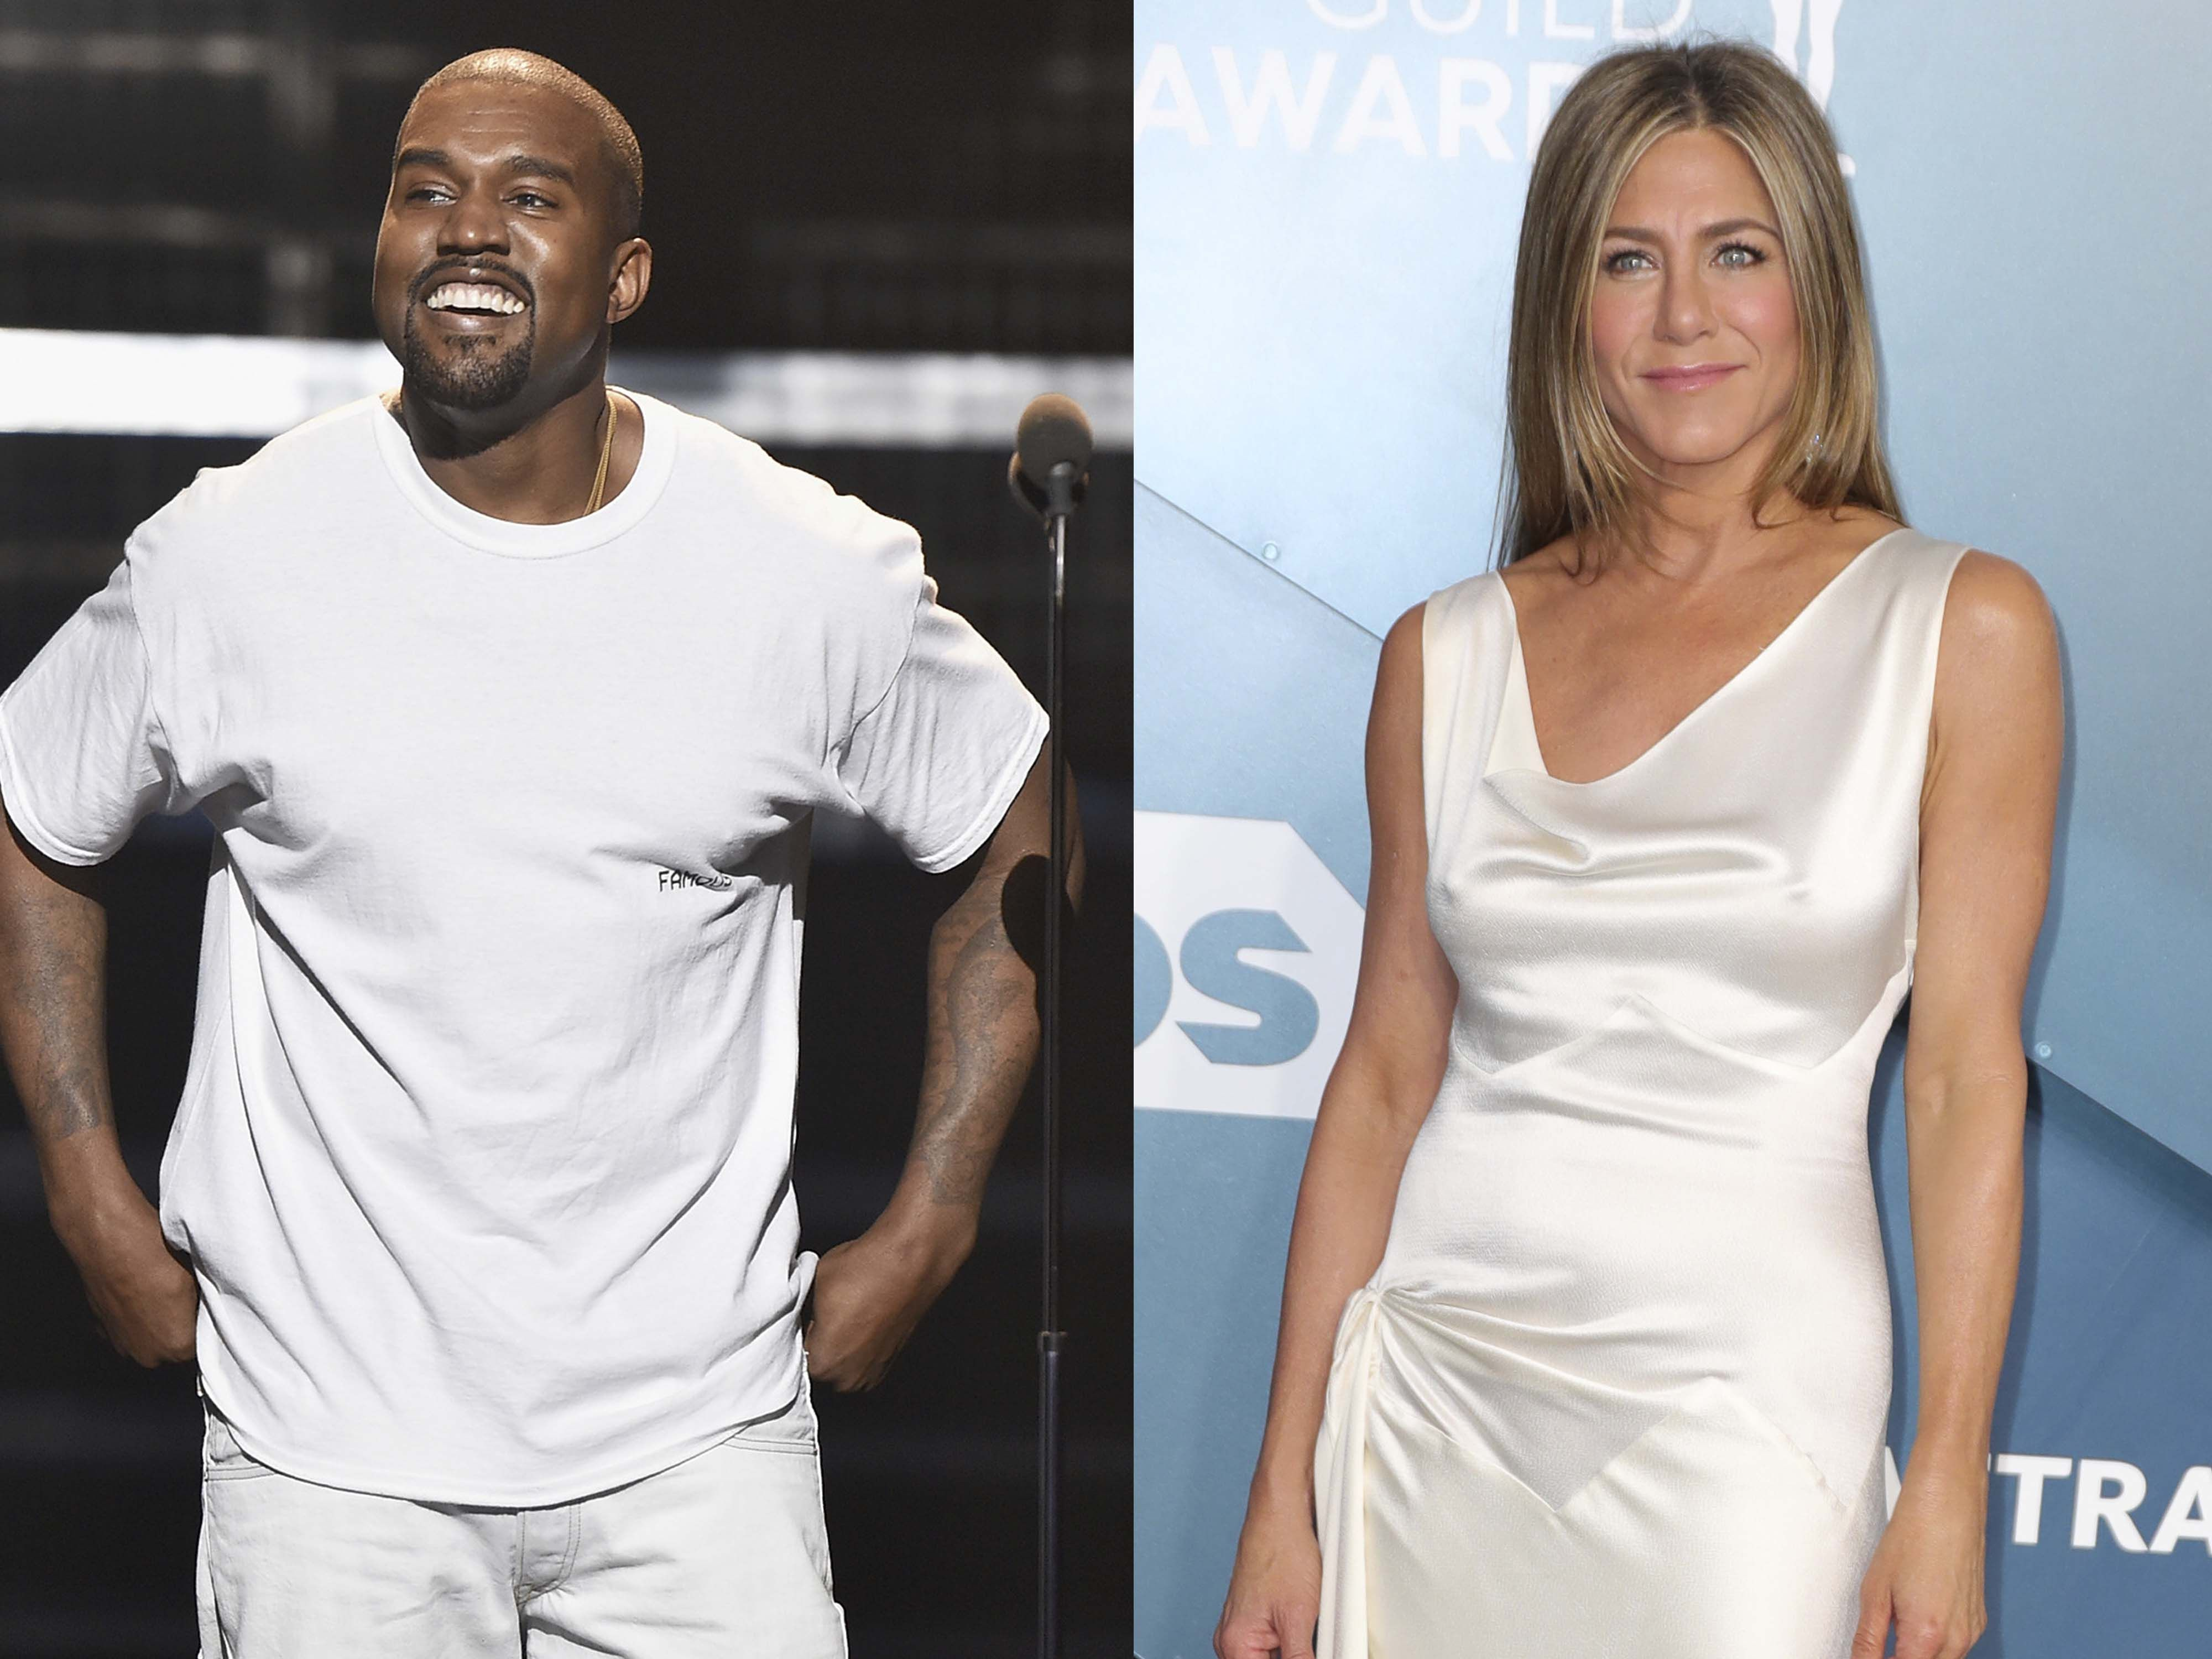 Jennifer Aniston butts heads with Kanye West over election